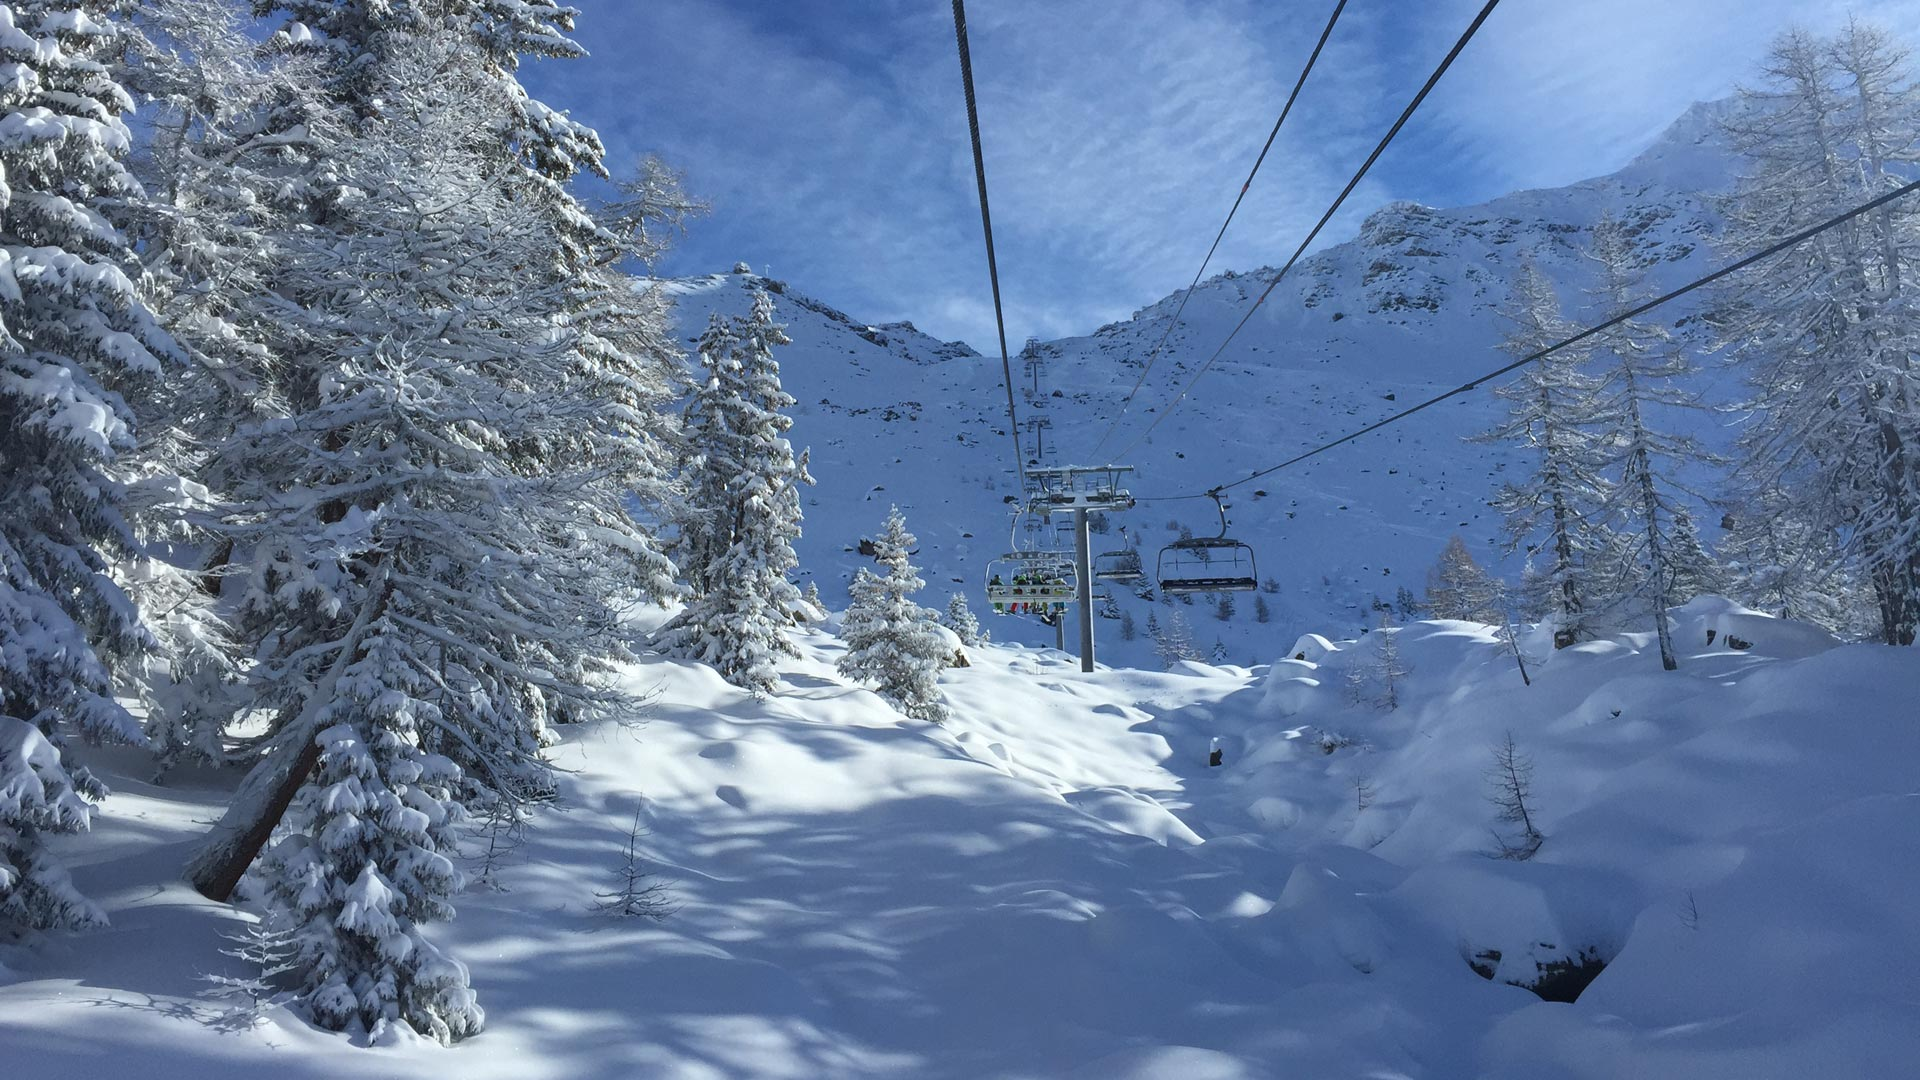 Skiing with Premiere Neige in Ste Foy